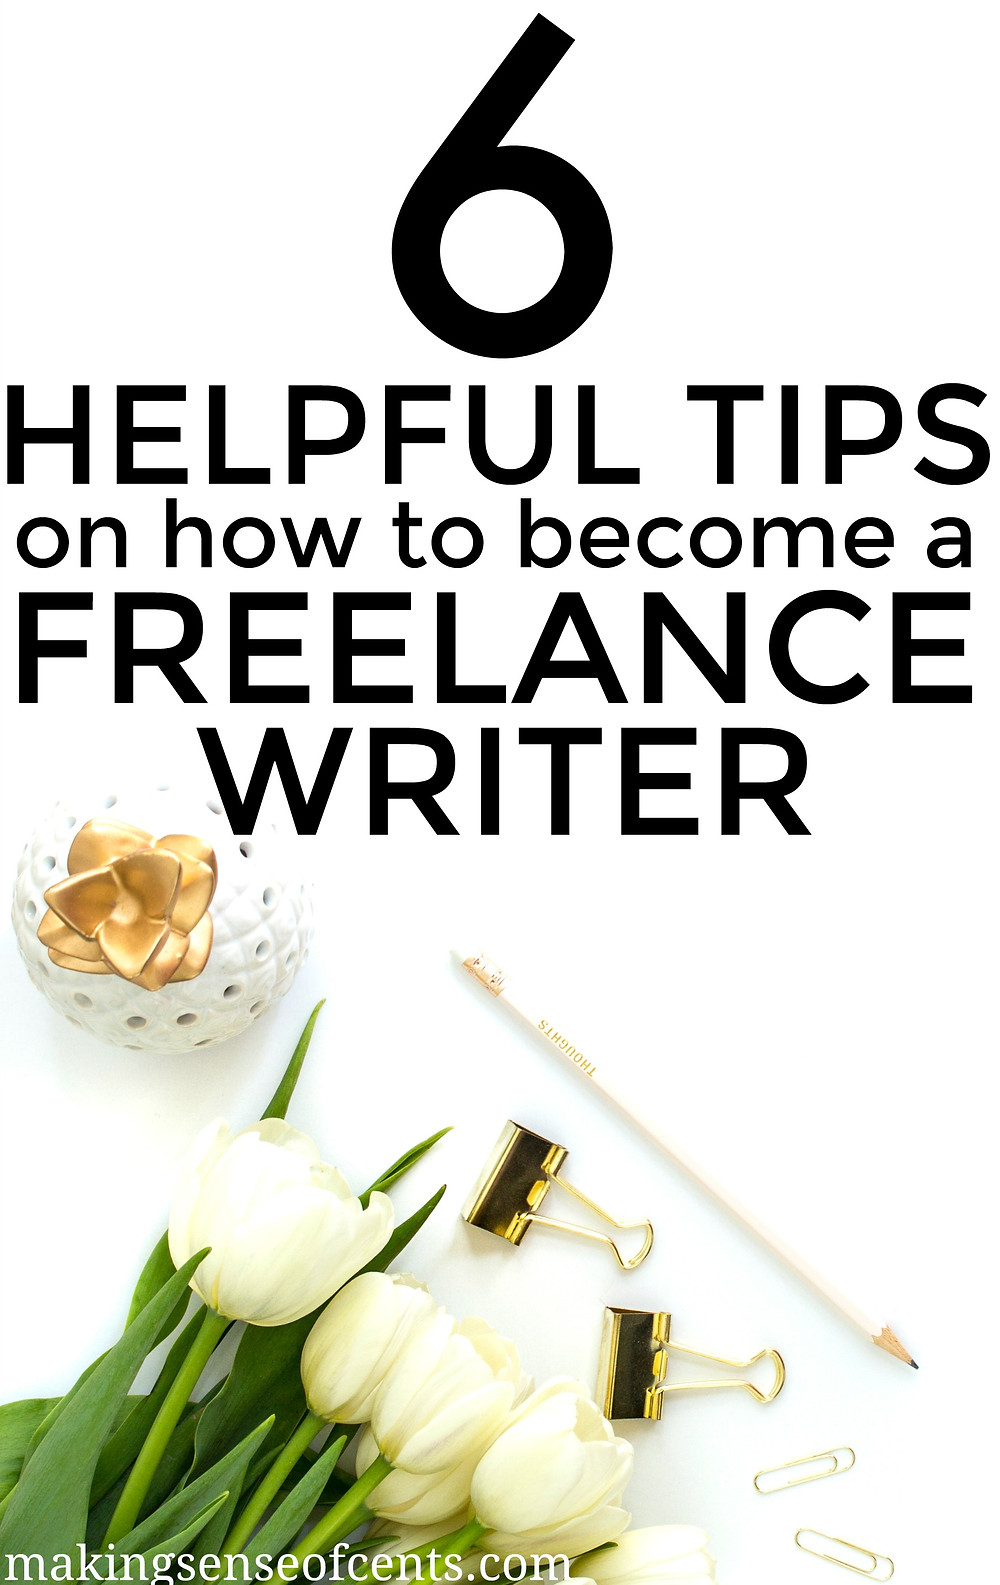 Find out what you need to know about becoming a freelance writer. This is a great list!